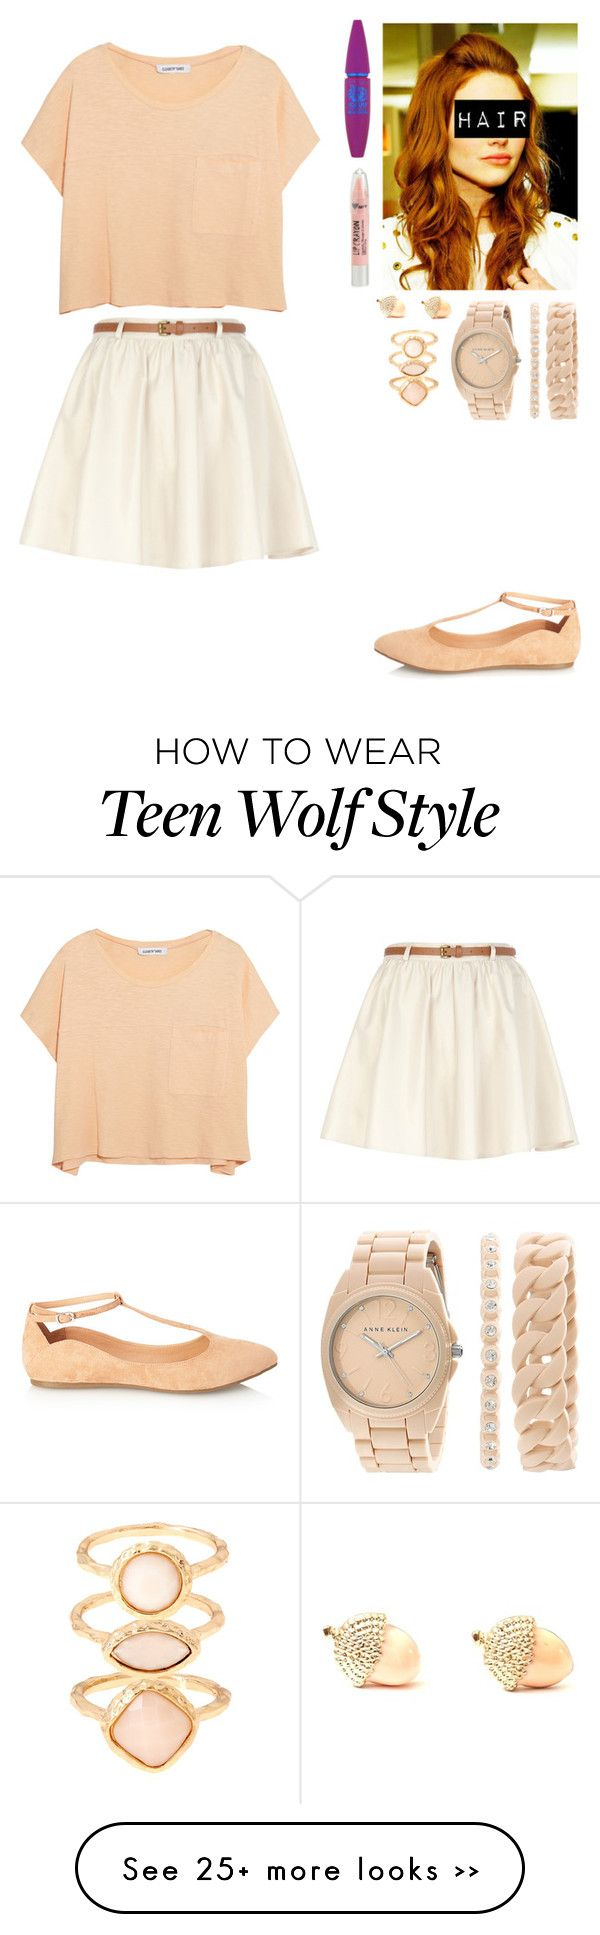 ""\ the indentions of your fingerprints still scar my skin //"" by tangie-leigh on Polyvore featuring Forever 21, River Island, Elizabeth and James, Aéropostale, Maybelline, Monsoon, Anne Klein, beige, pastels and goldjewelry600|1935|?|bcc312e573109f2cba9b68206ec09bbf|False|UNLIKELY|0.310621440410614